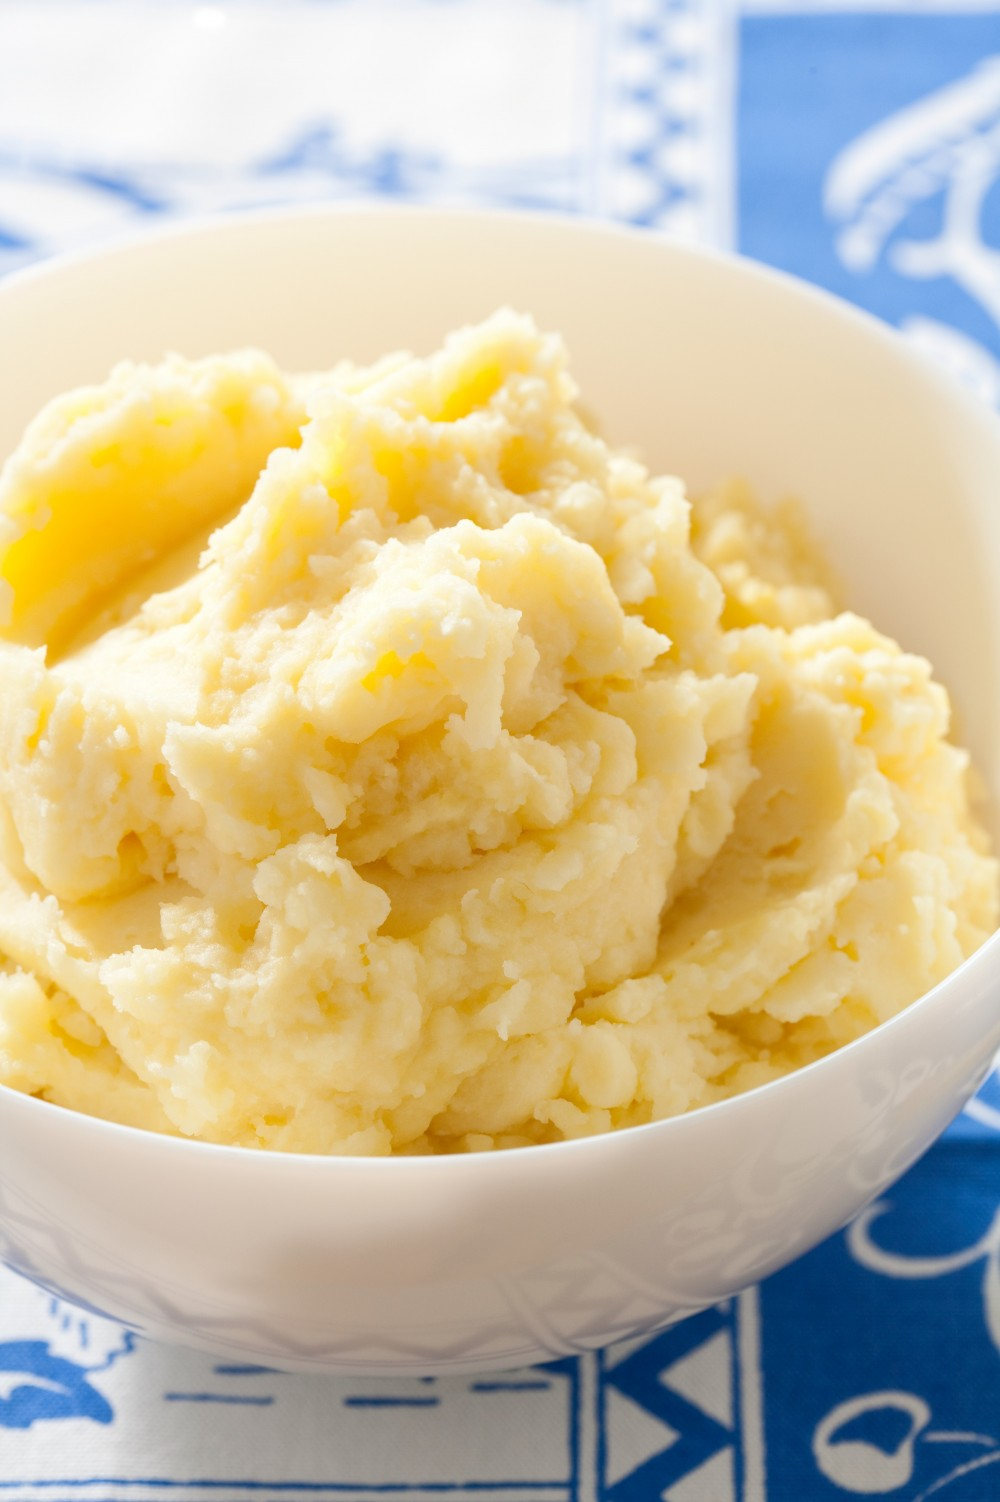 Buttermilk mashed potatoes. Photo: Courtesy of America's Test Kitchen